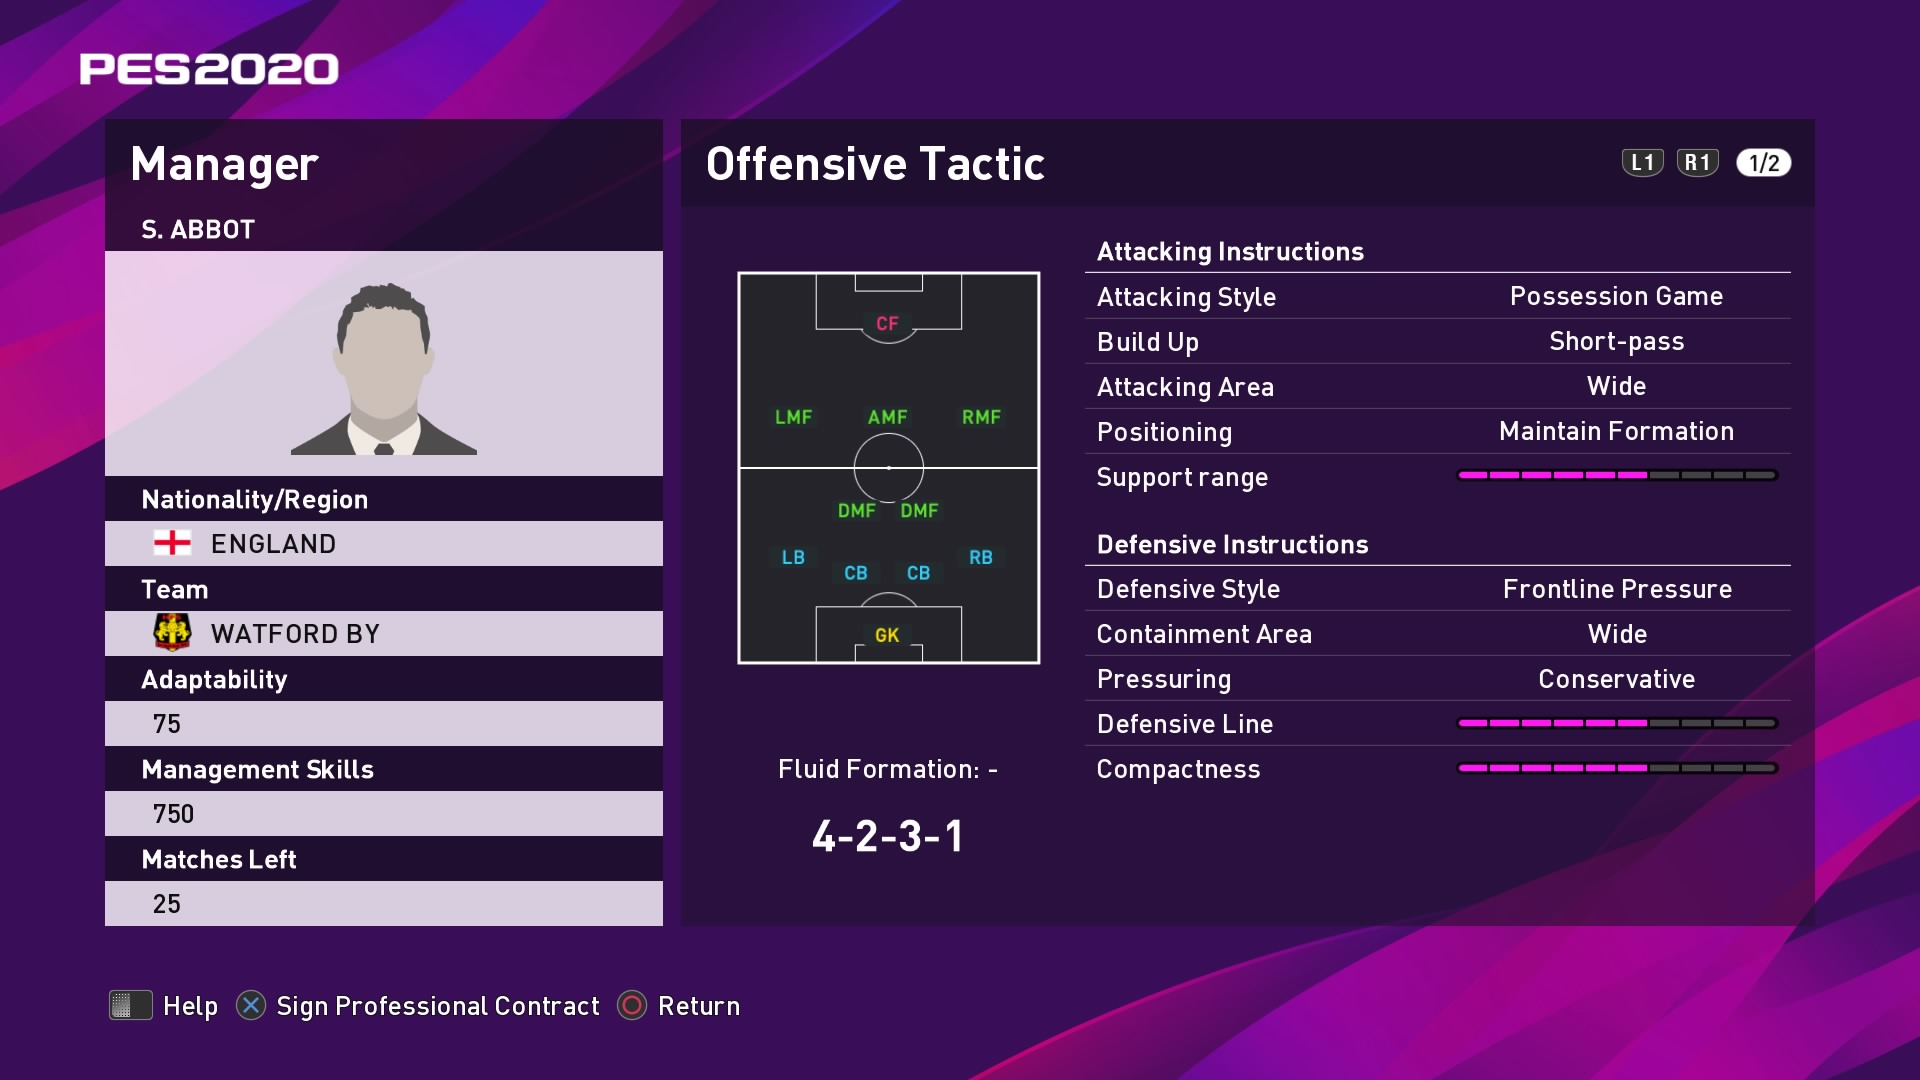 S. Abbot (Nigel Pearson) Offensive Tactic in PES 2020 myClub